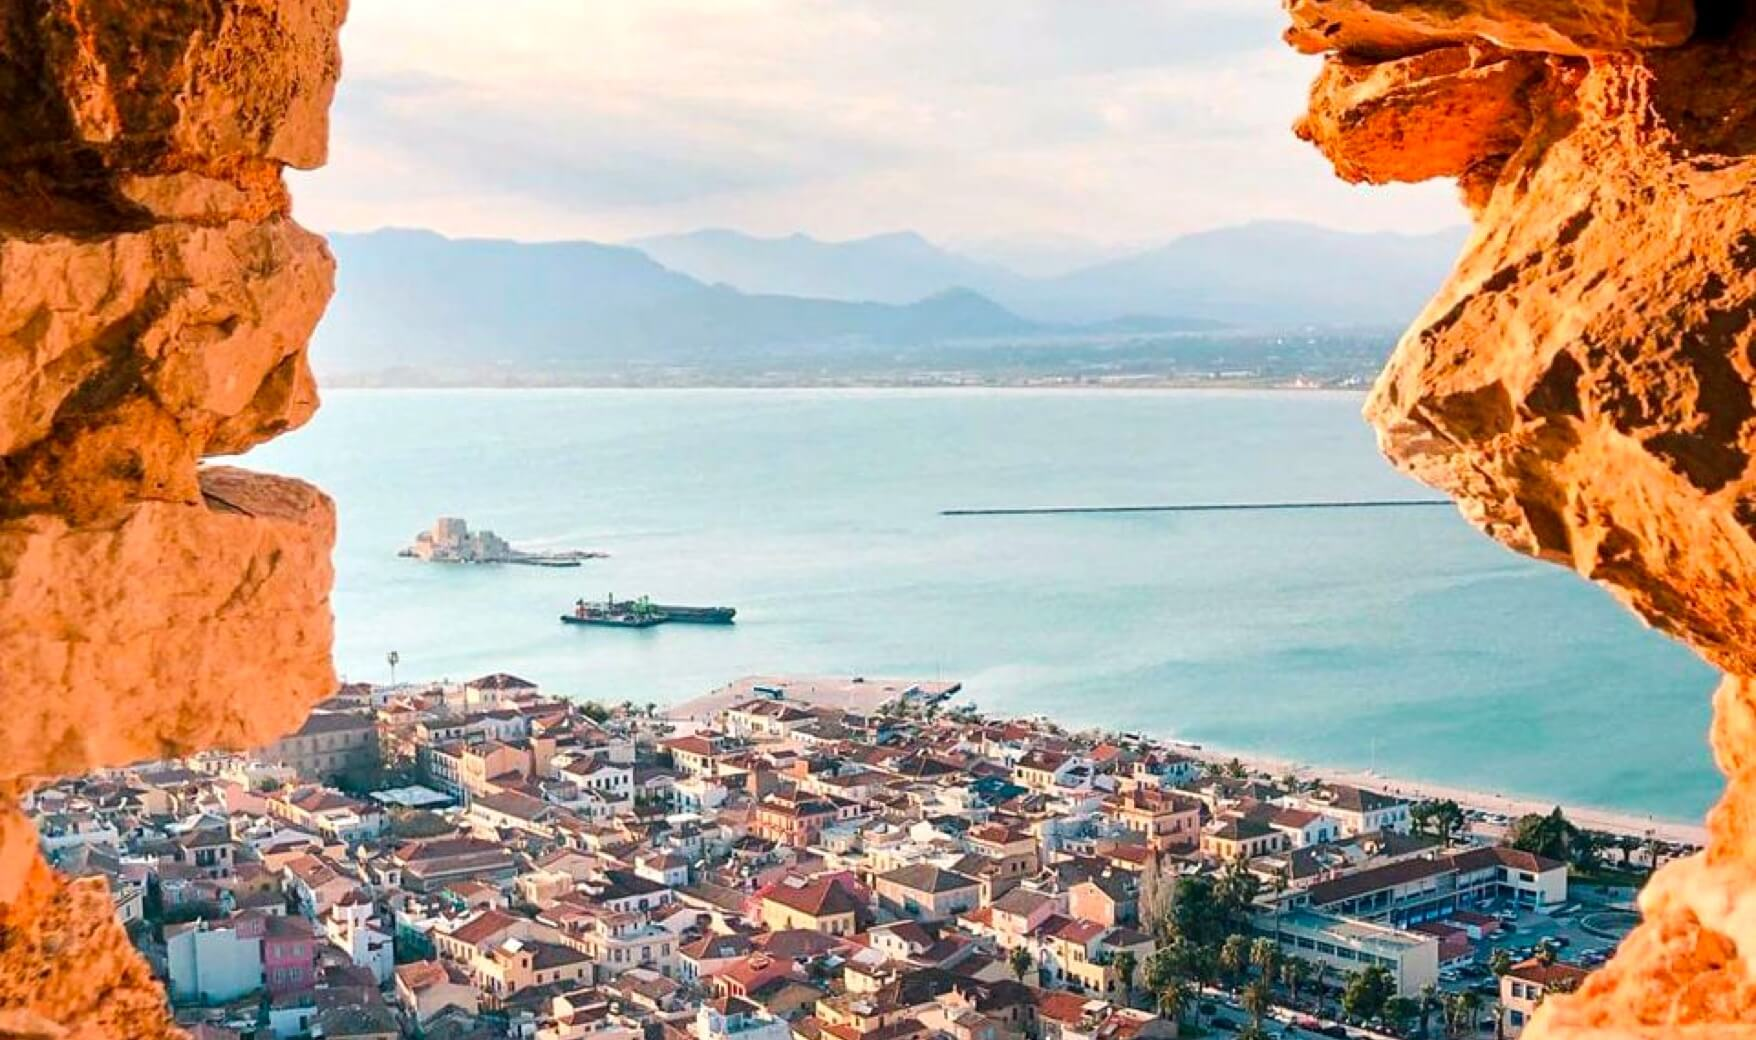 Peering over the city of Nafplio